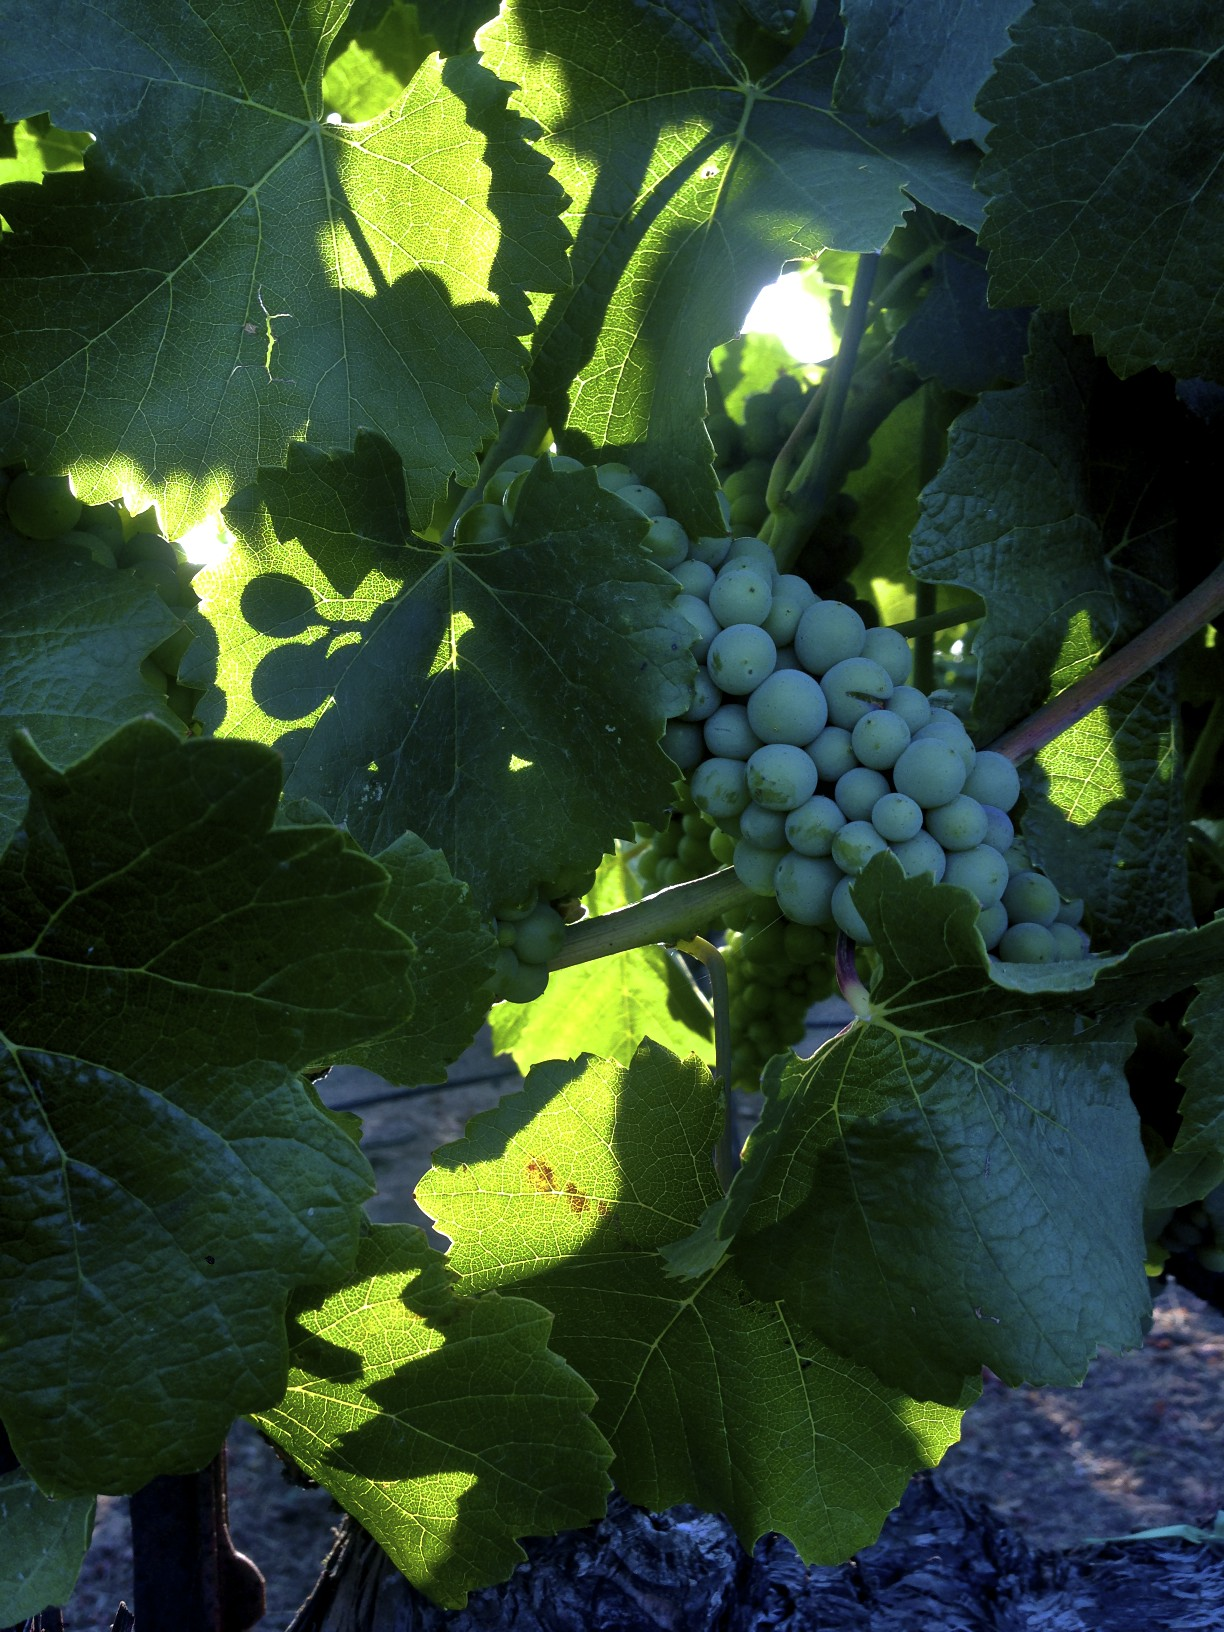 First light in vineyards, Yountville, Napa Valley 7/1/14